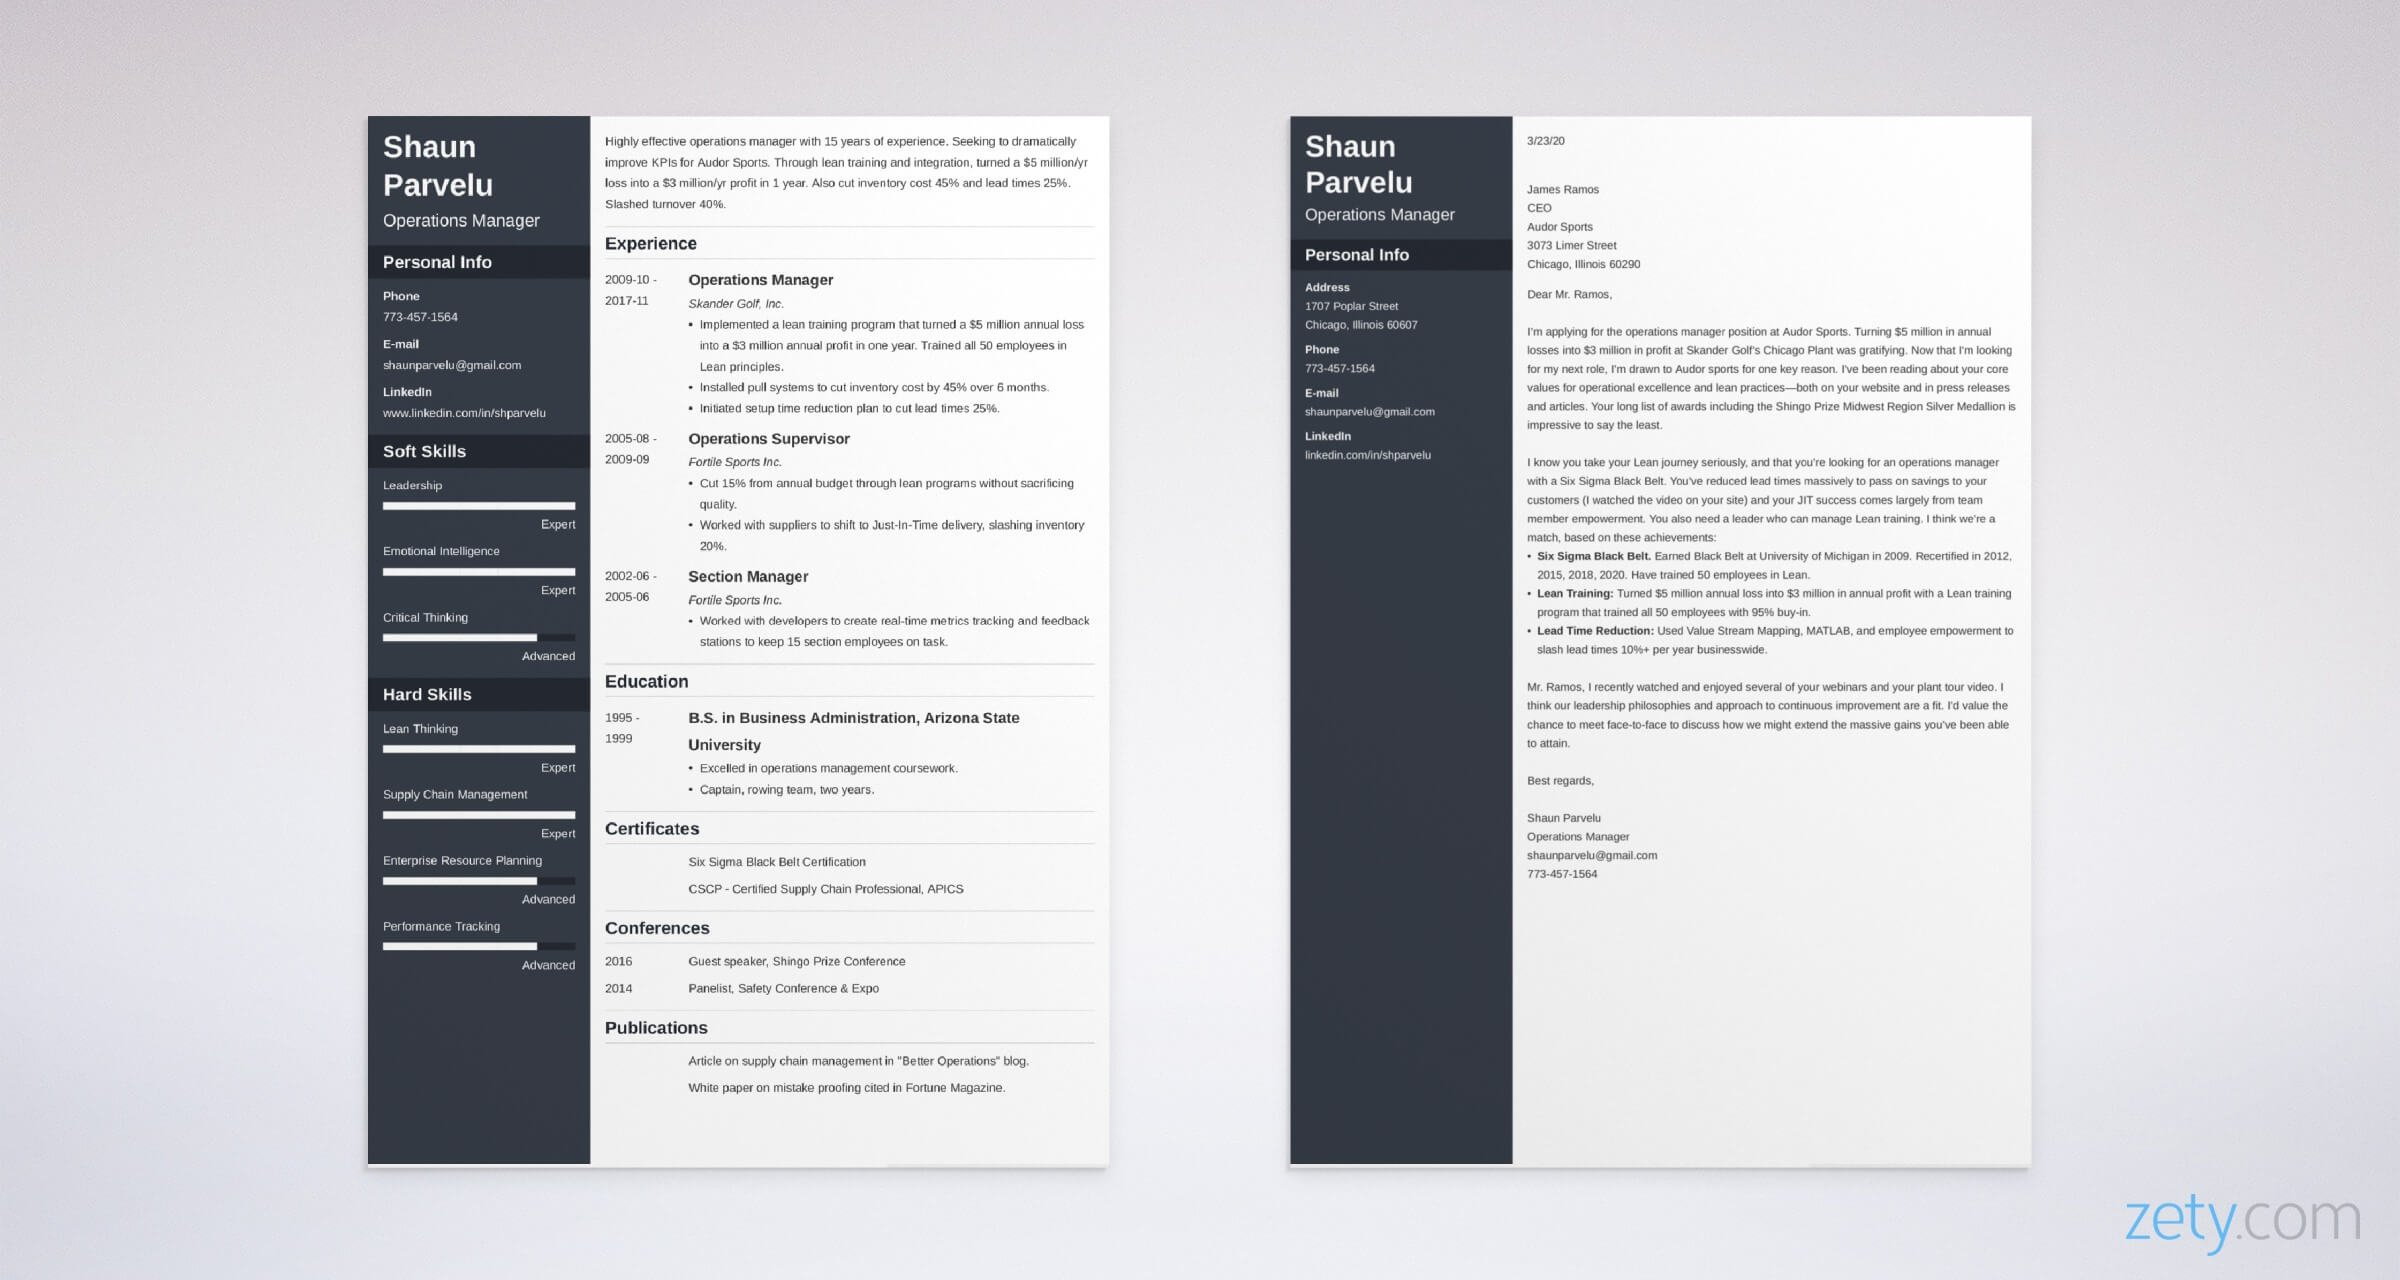 Resume Cover Letter Examples from cdn-images.zety.com